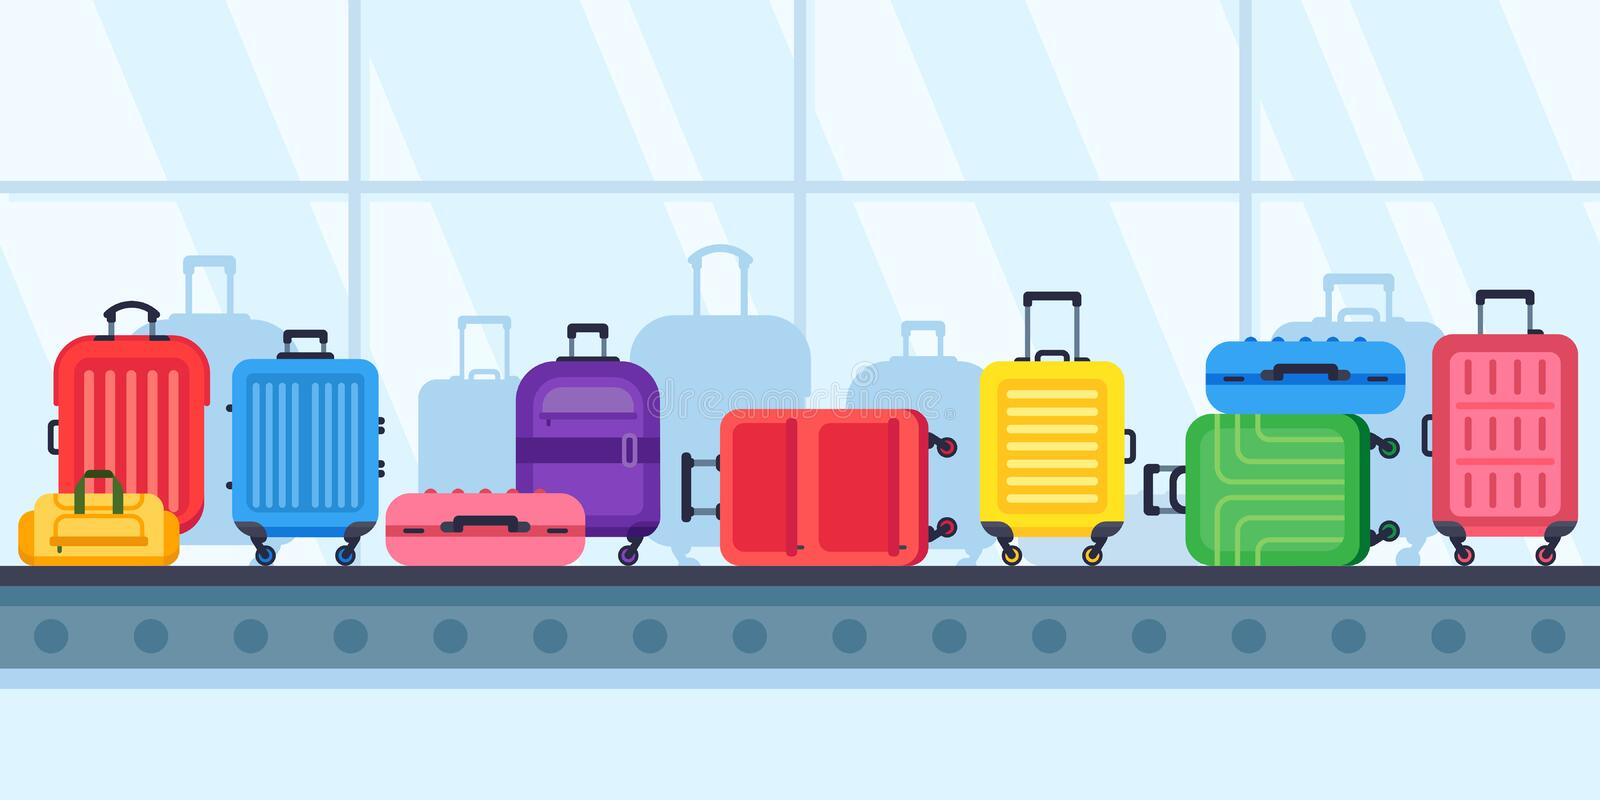 Baggage belt conveyor. Travel suitcases on airport luggage carousel, airline lost suitcase vector illustration vector illustration